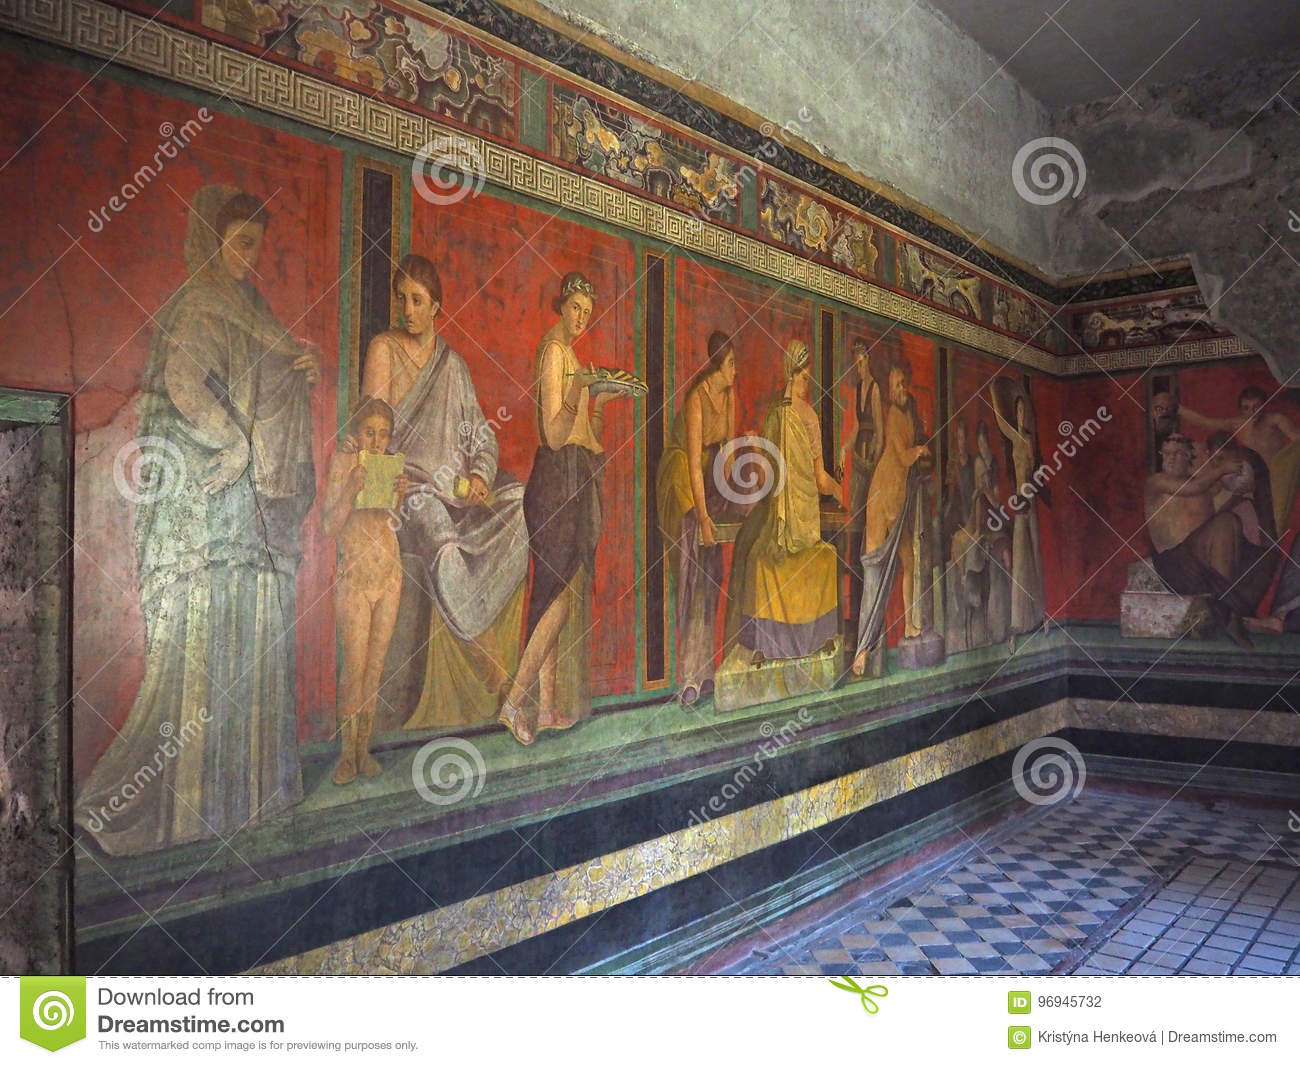 Wall fresco in Pompeii house Villa of the Mysteries, before 79 C